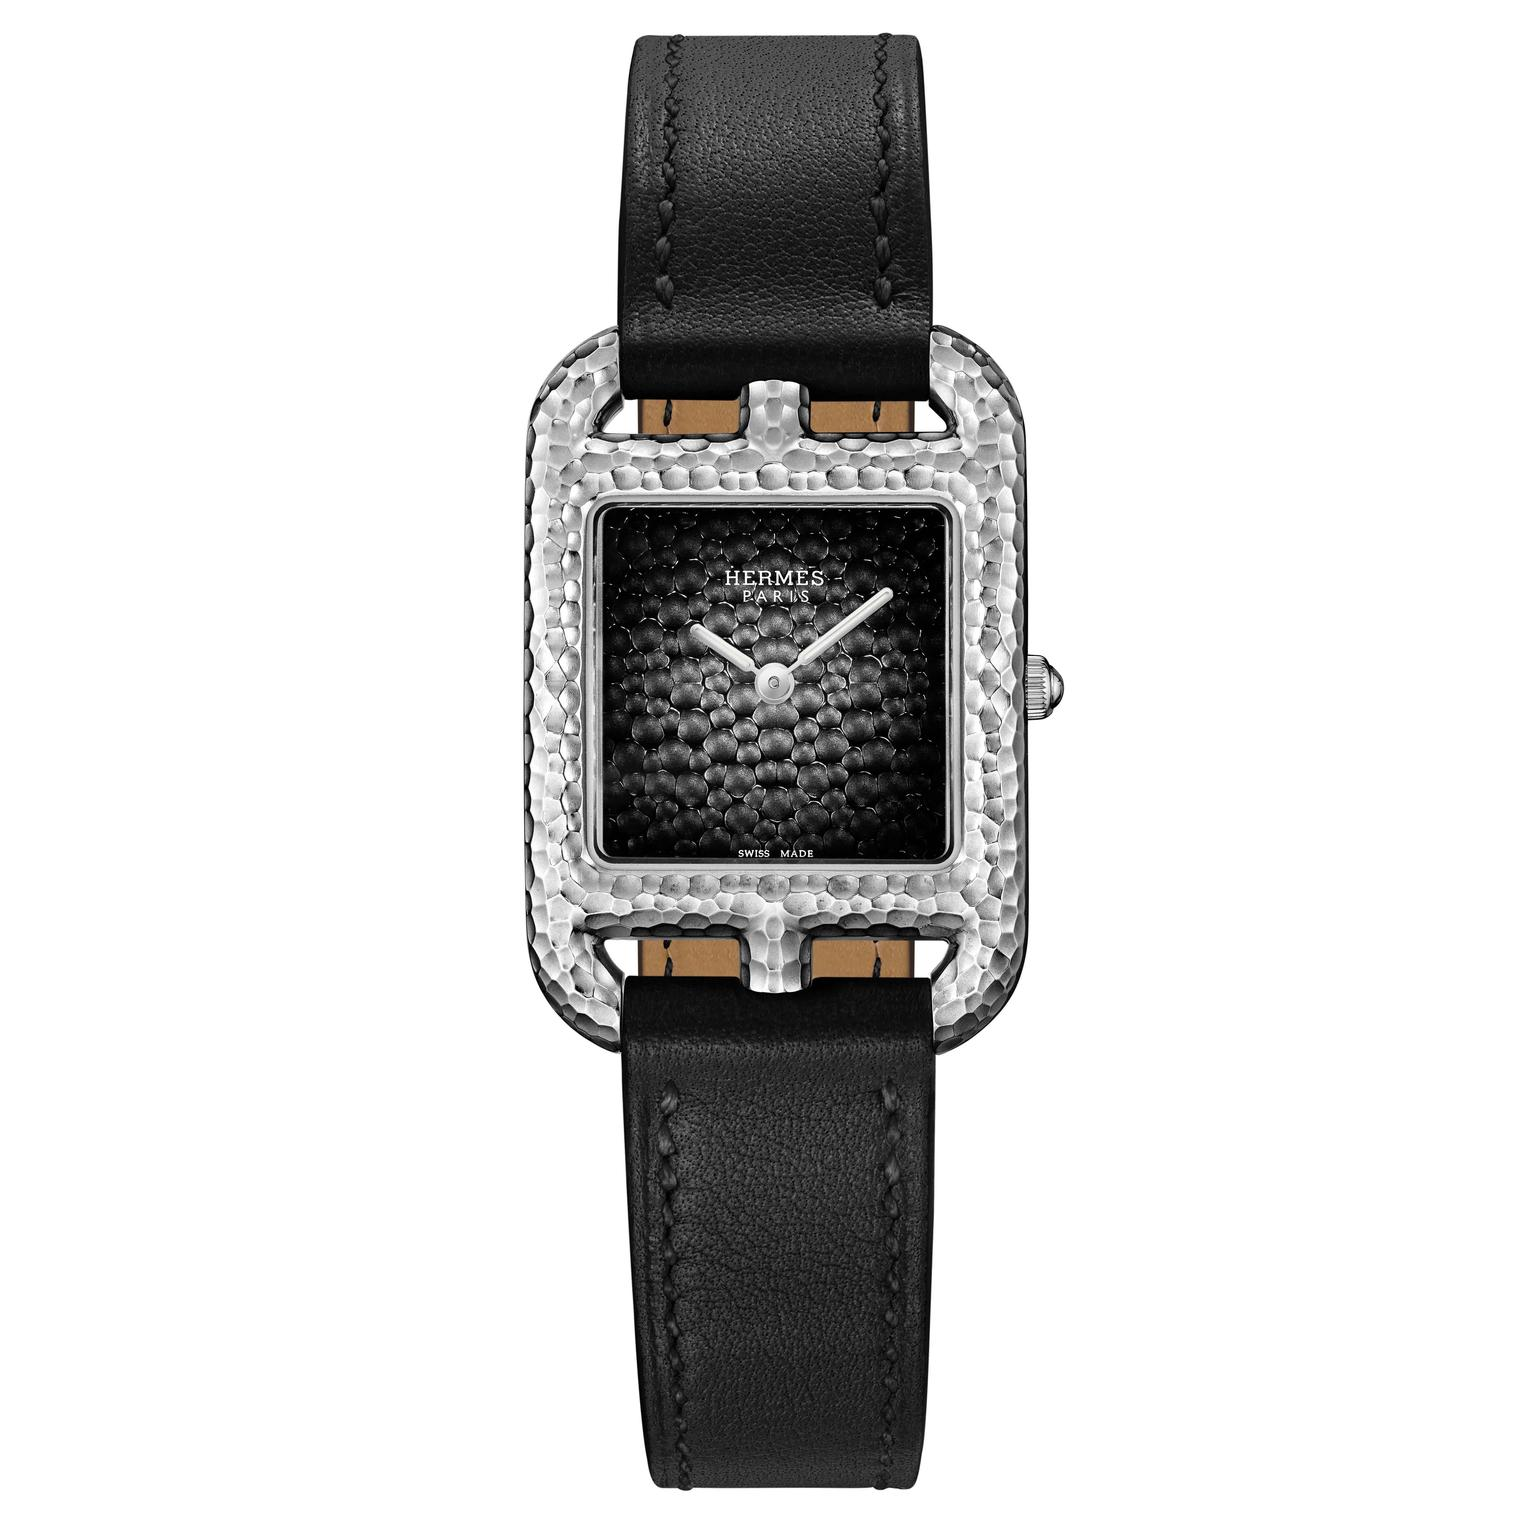 Hermes Cape Cod Martelee watch